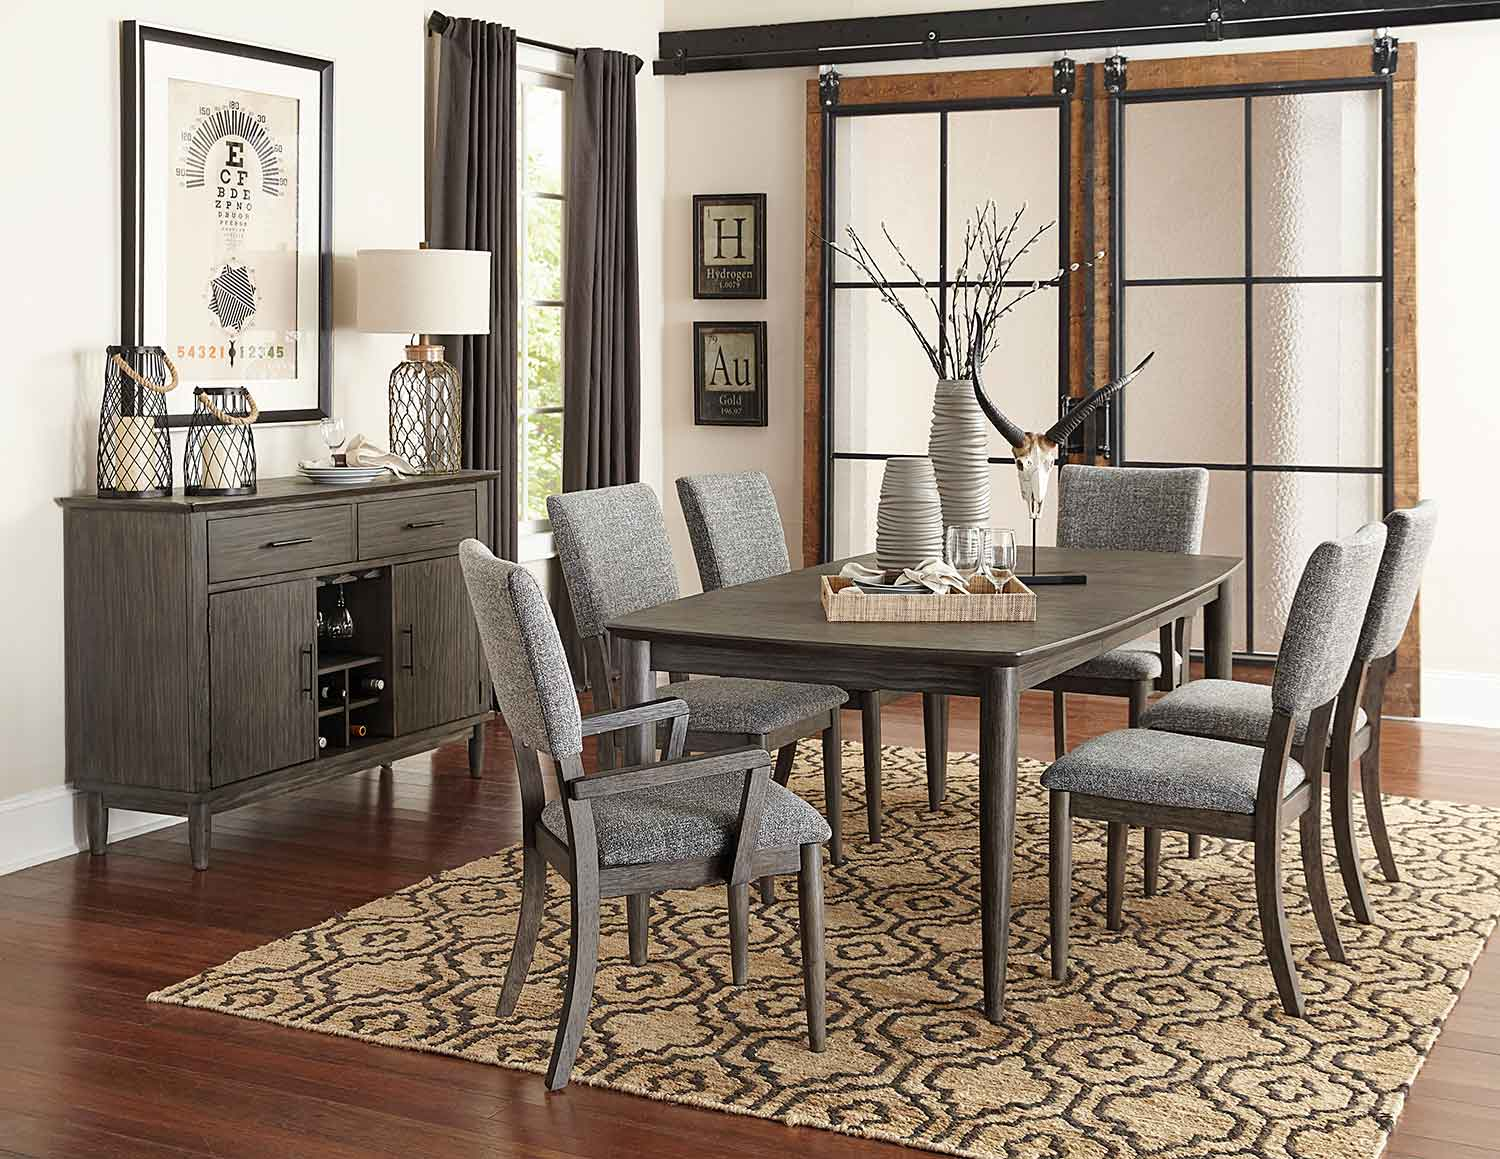 Homelegance Roux Dining Set Rustic Or Grey 5568 Dining